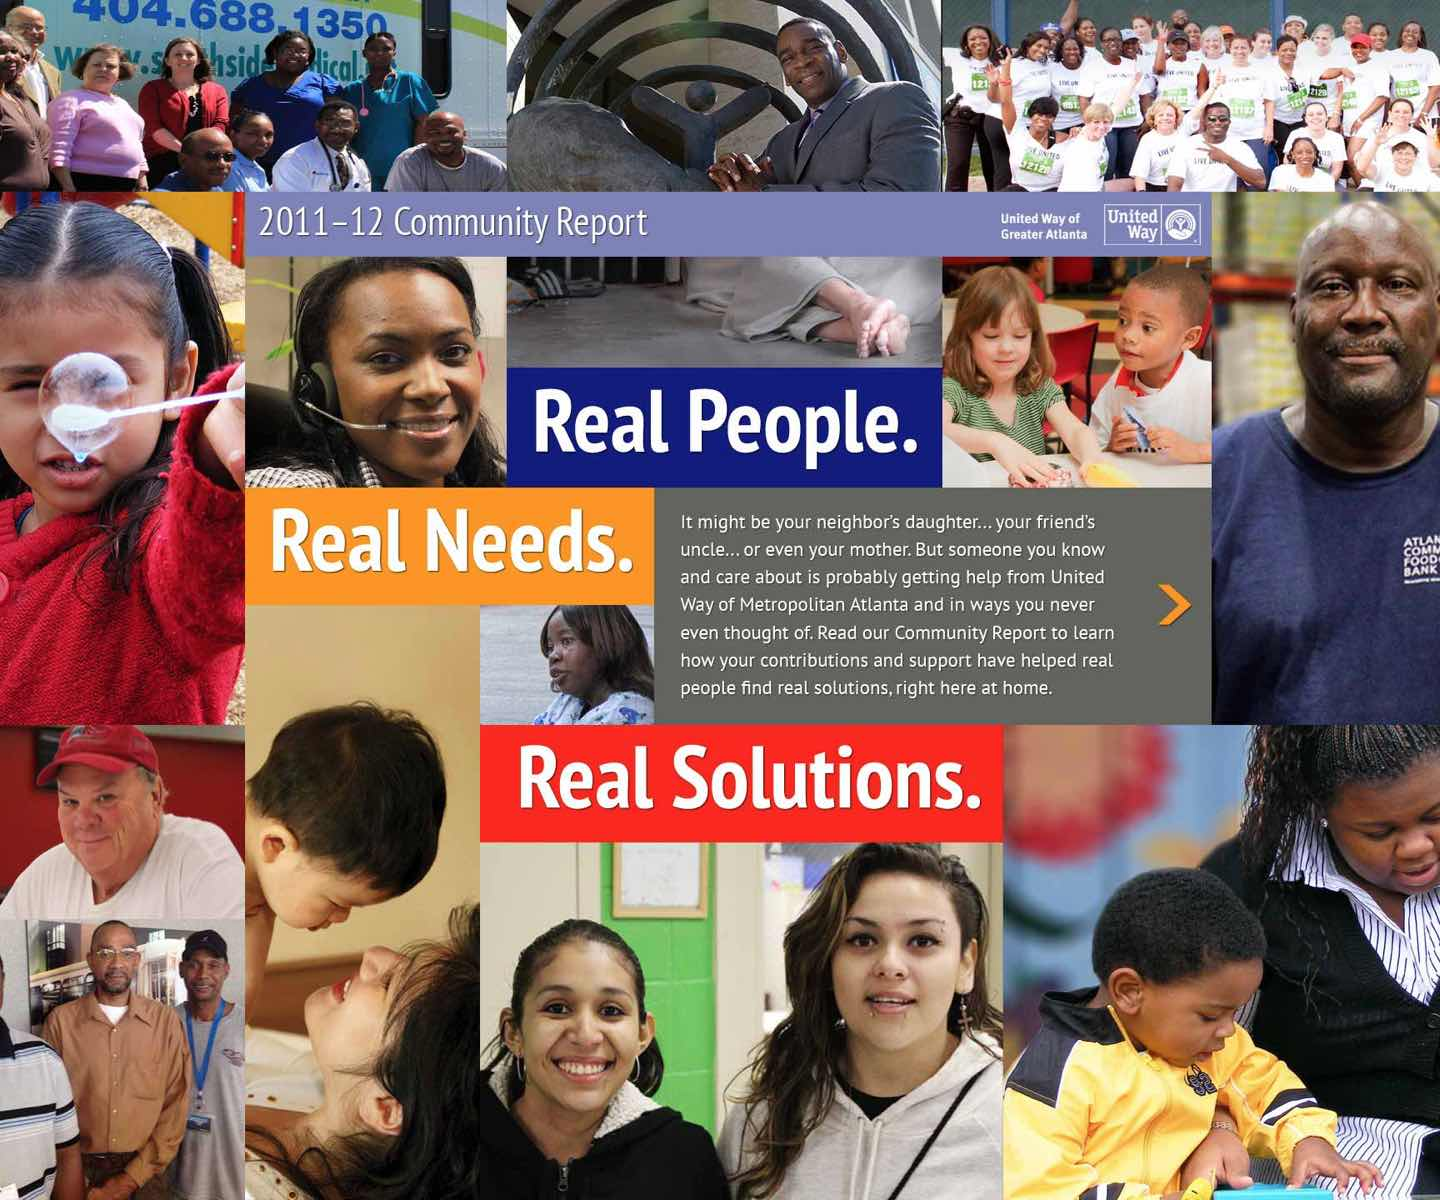 United Way Community Report | Real people. Real needs. Real solutions. 2011-2012 Community Report